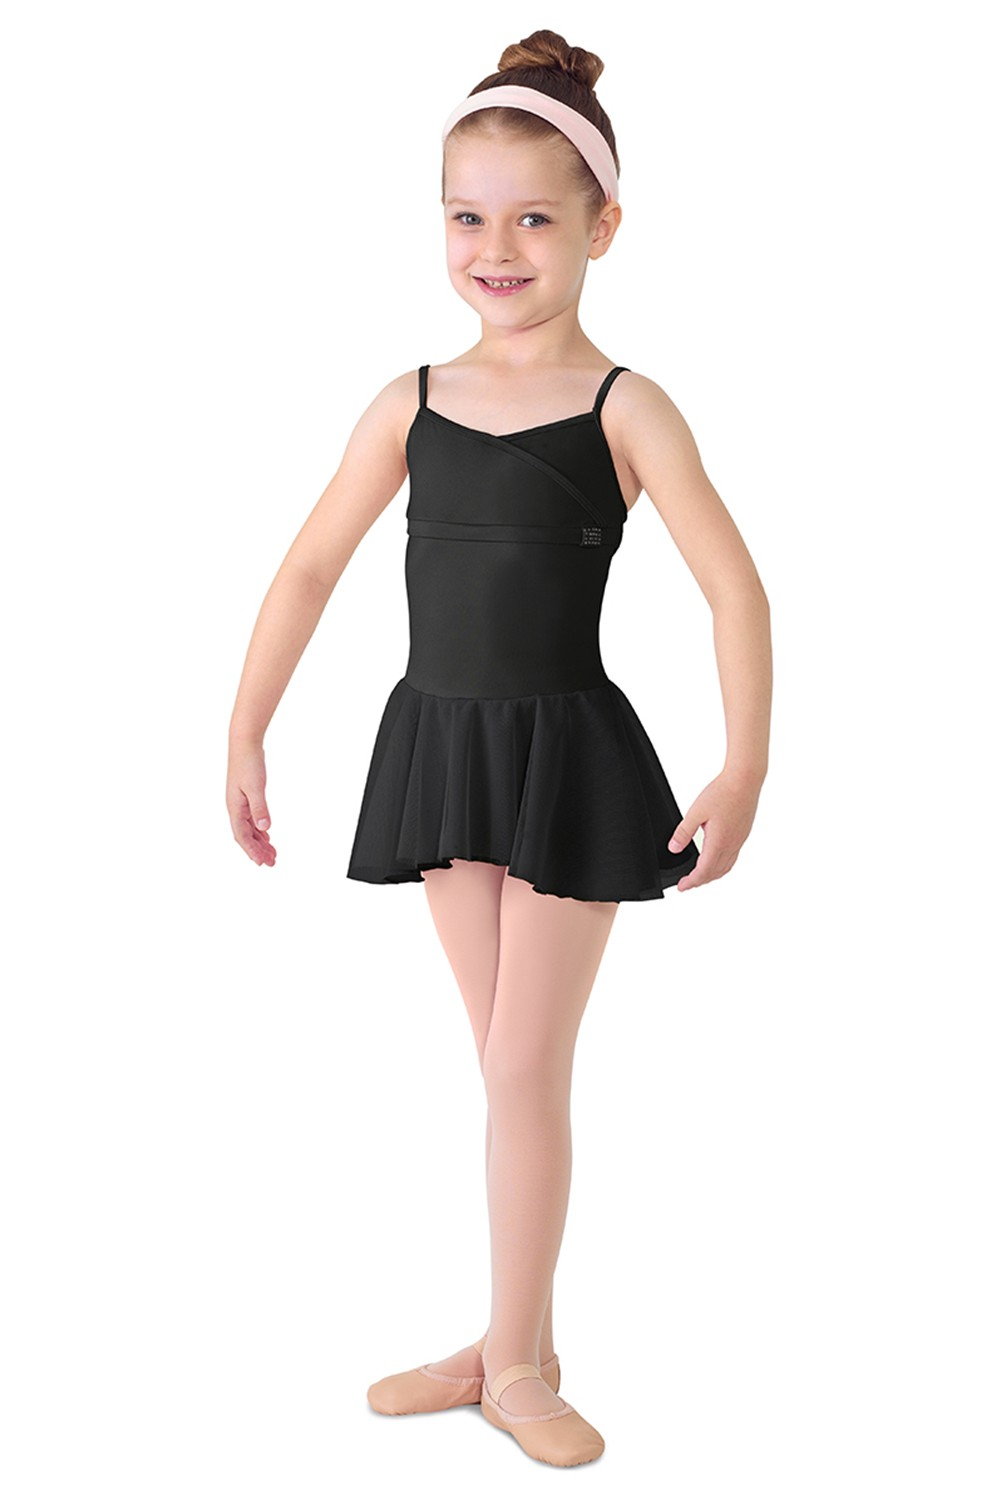 Girls W/skirted Leo Children's Dance Leotards